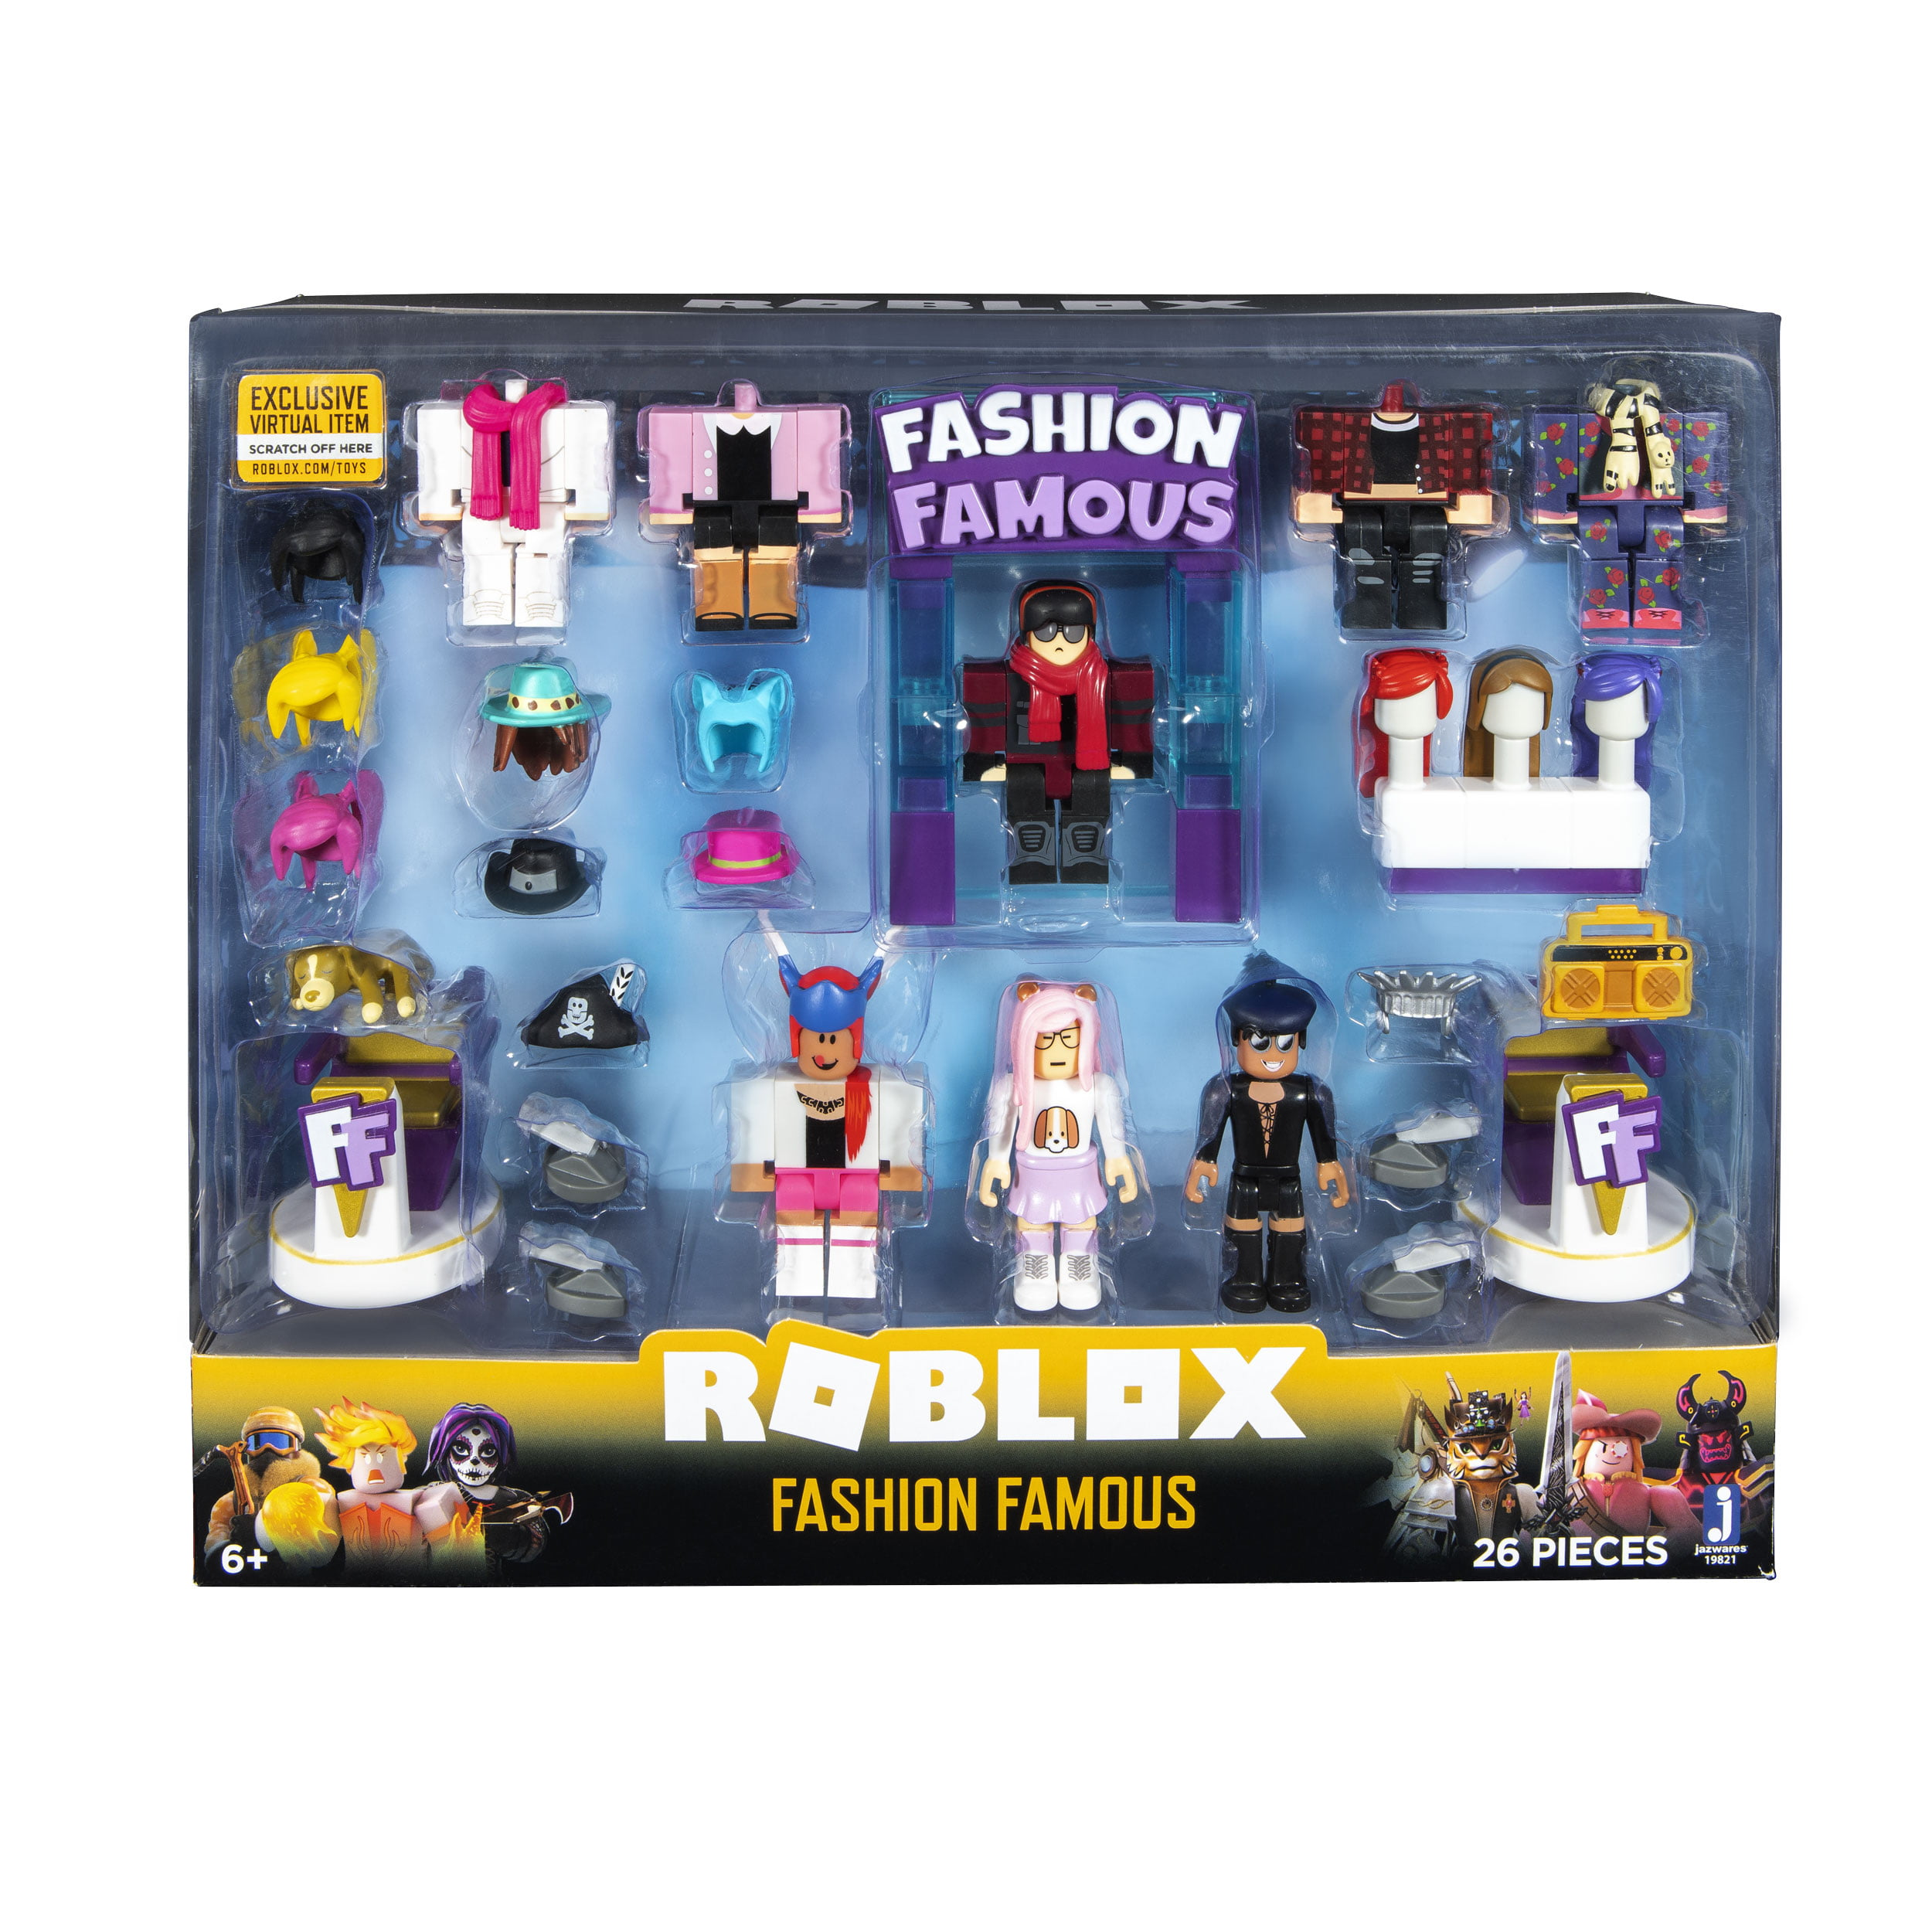 Roblox Fashion Famous Song Codes Roblox Games That Give Roblox Celebrity Collection Fashion Famous Playset Includes Exclusive Virtual Item Walmart Com Walmart Com